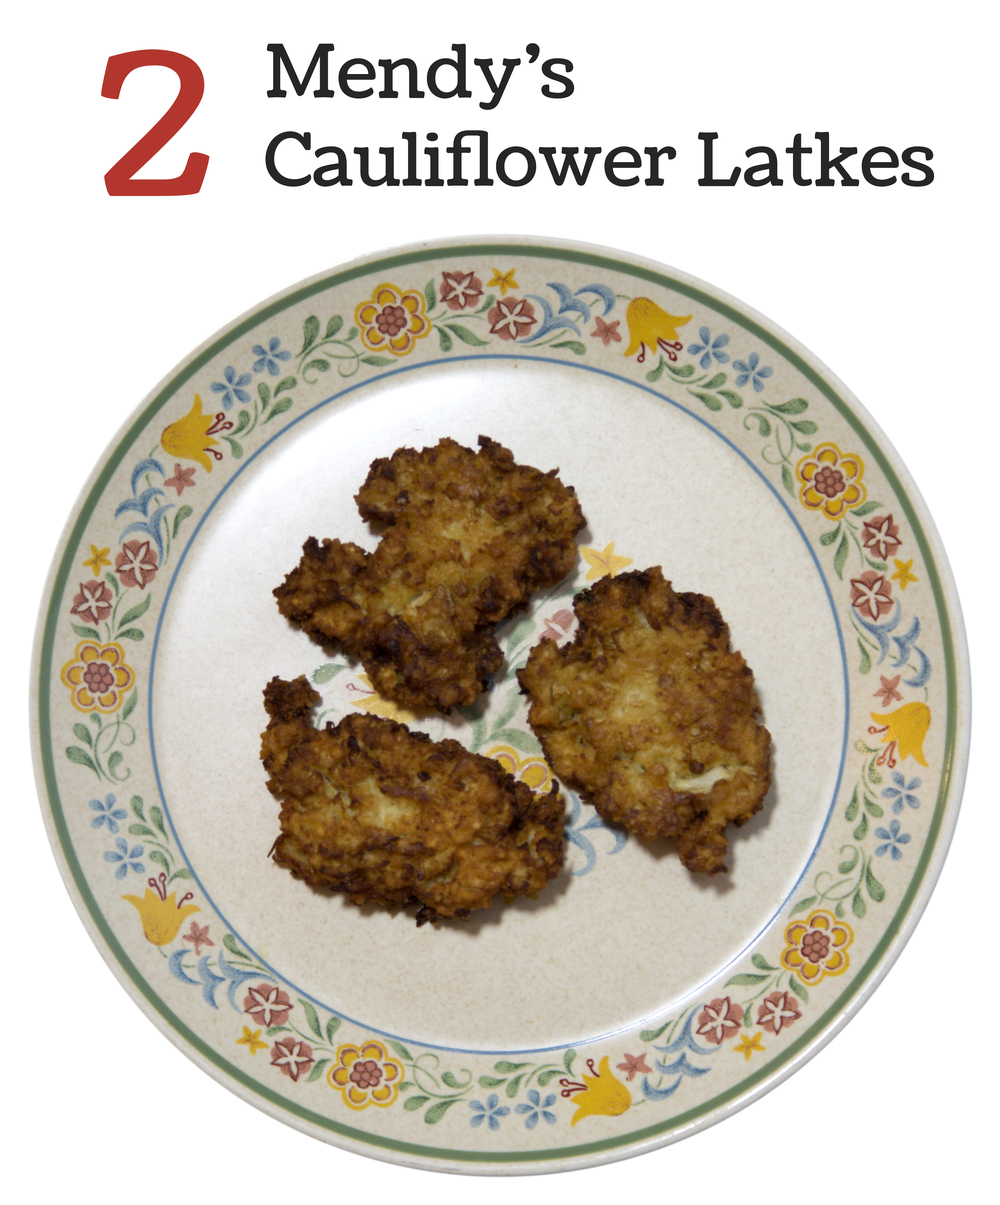 2 Mendy's Cauliflower Latkes